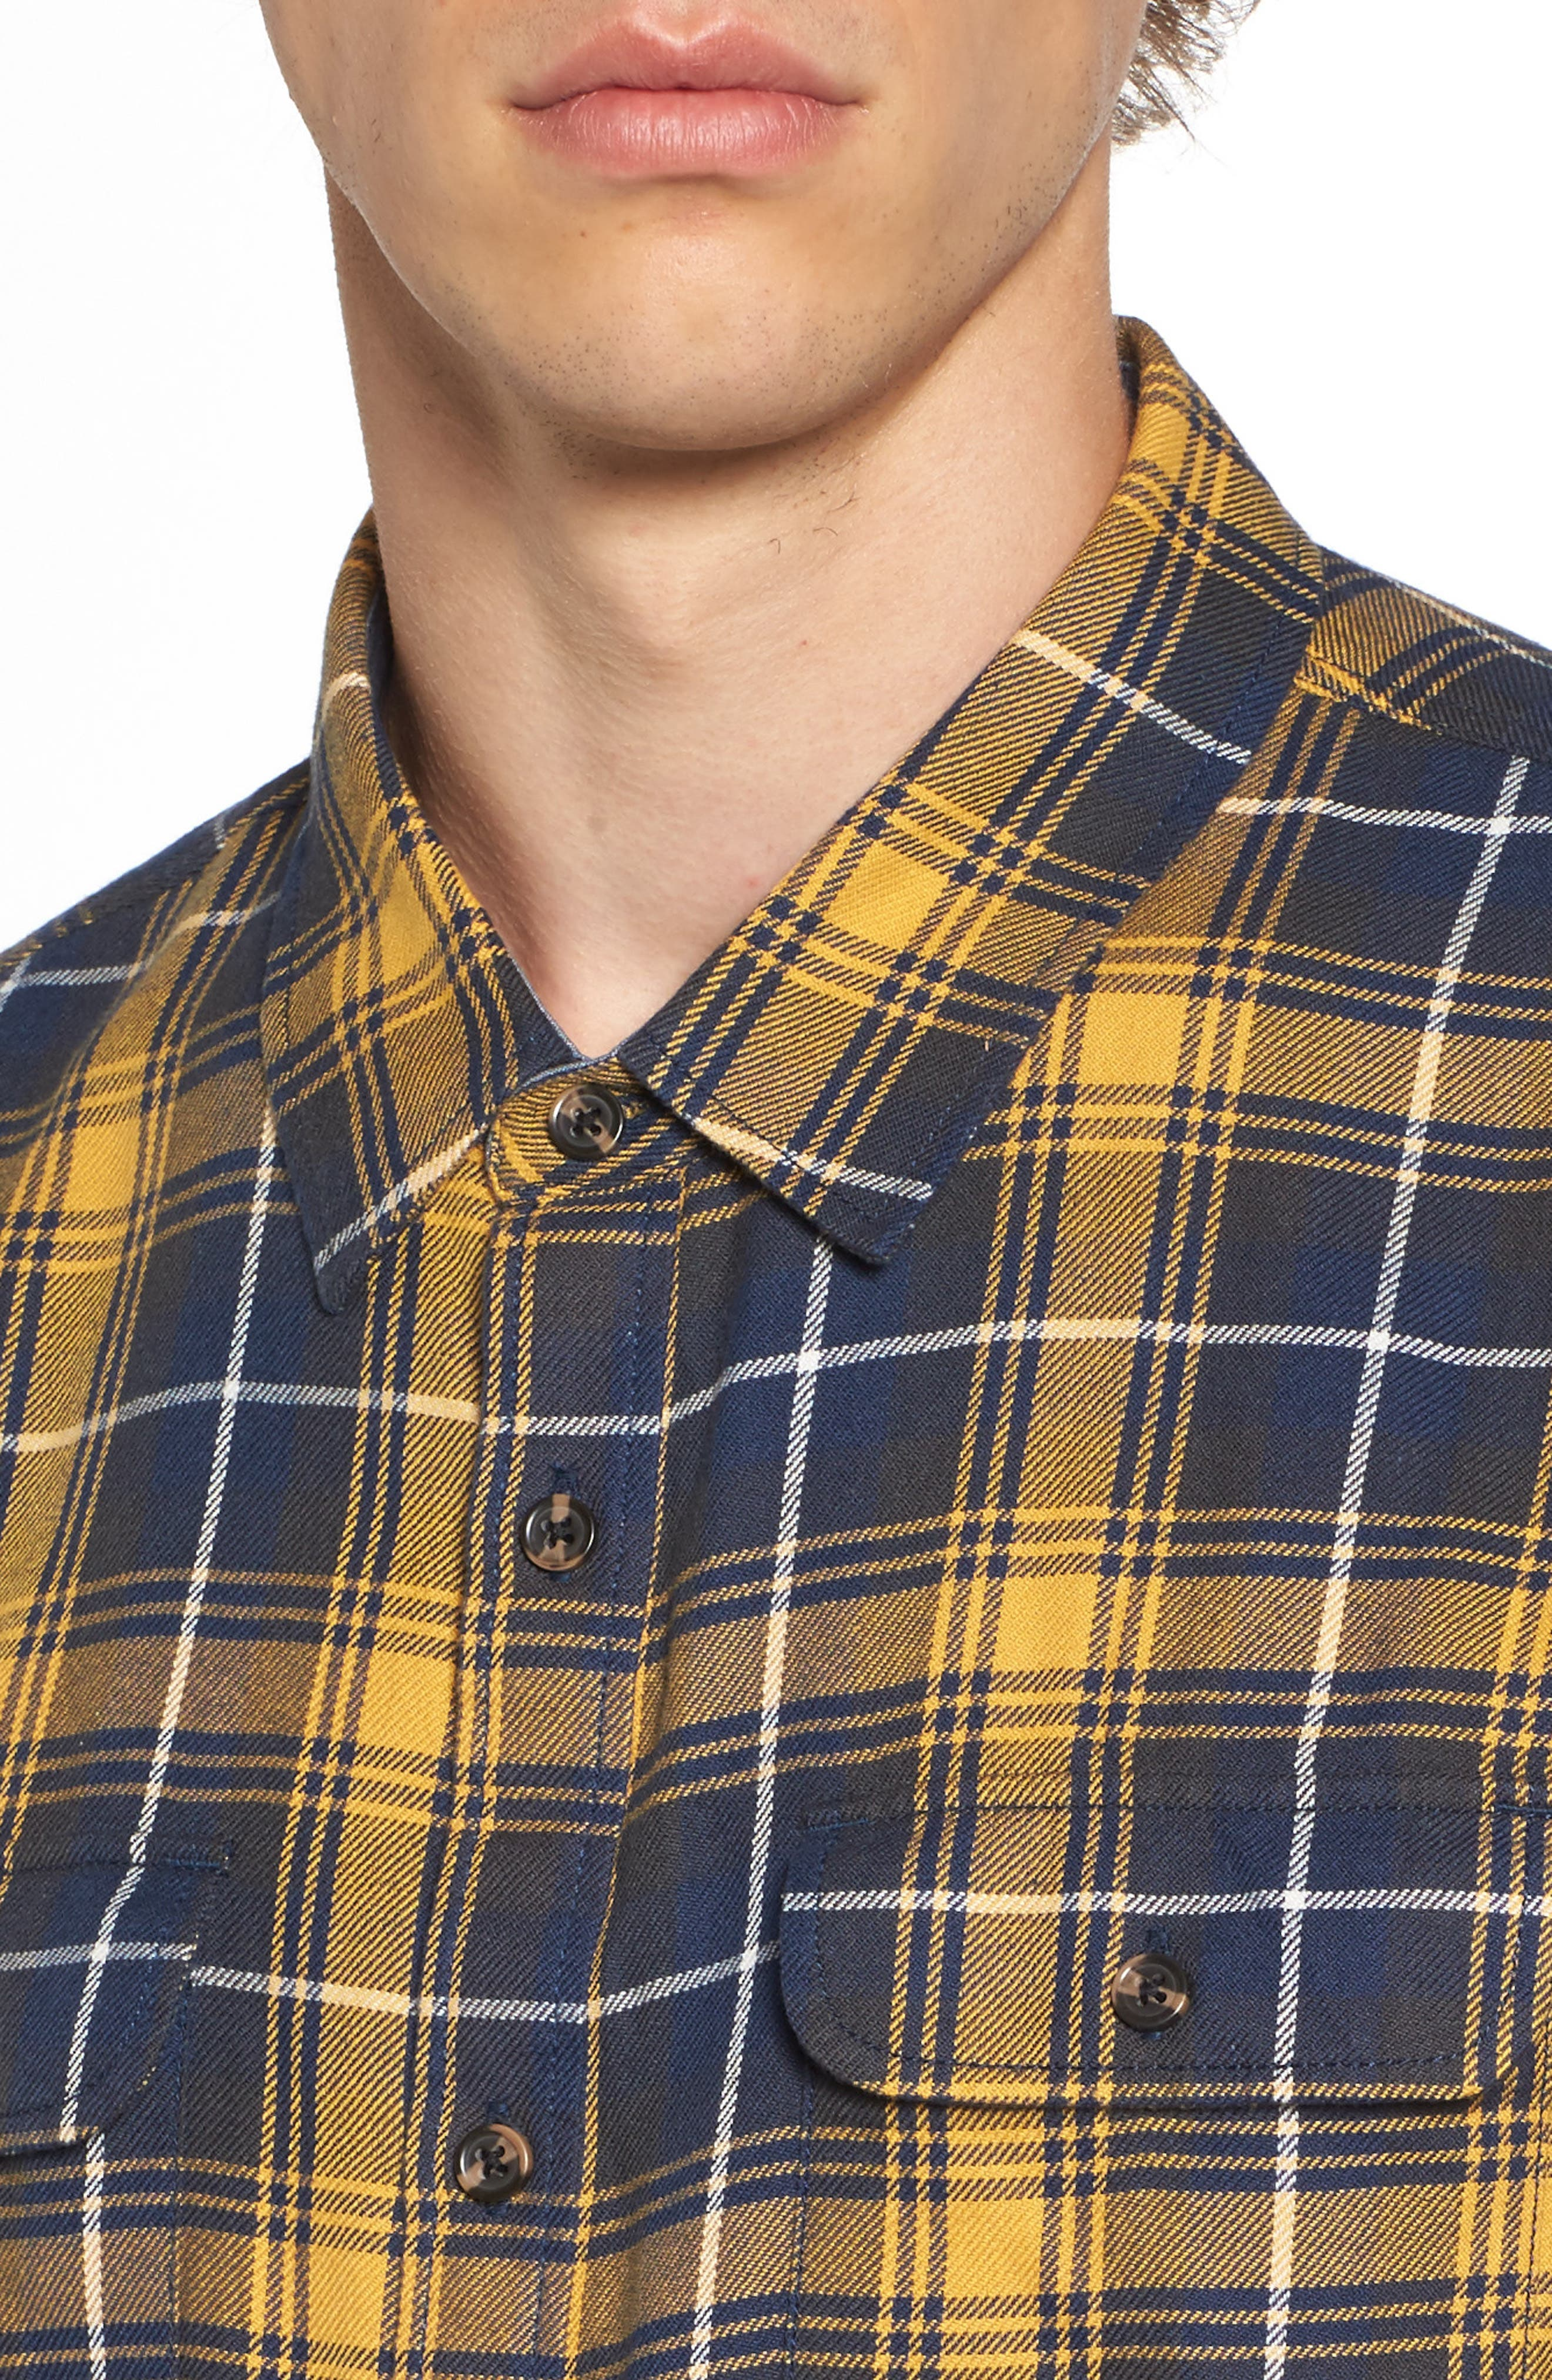 Sycamore Plaid Flannel Sport Shirt,                             Alternate thumbnail 4, color,                             Mineral Yellow/ Dress Blues